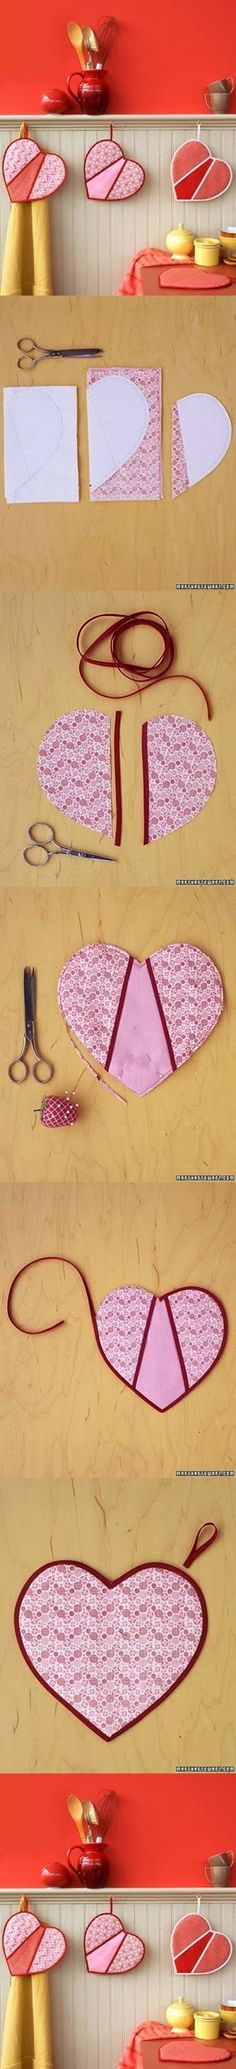 Heart Shaped Pot Holders tutorial